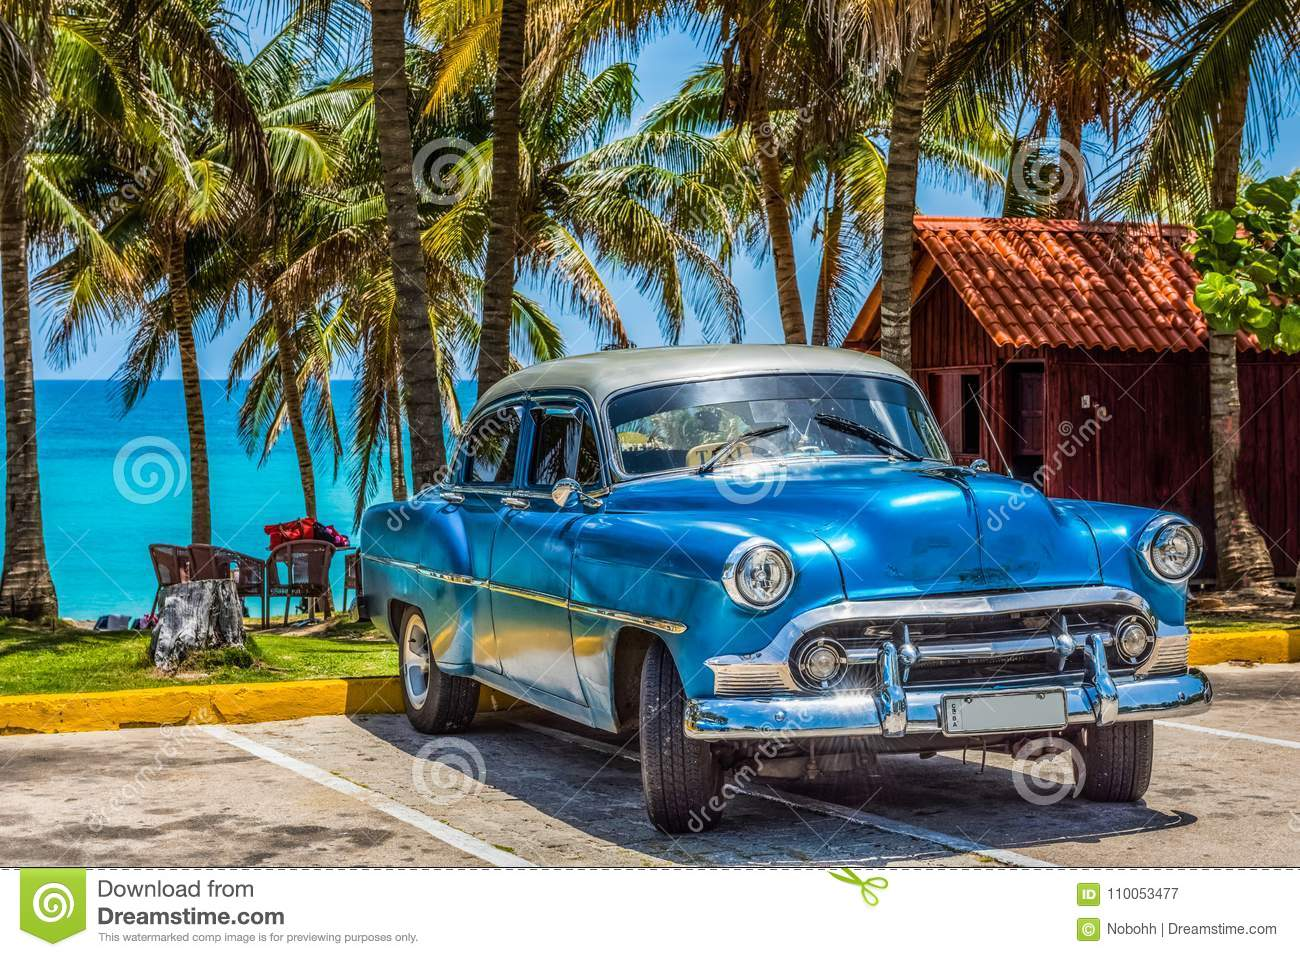 American blue Chevrolet classic car with silver roof parked on the beach in Varadero Cuba - Serie Cuba Reportage